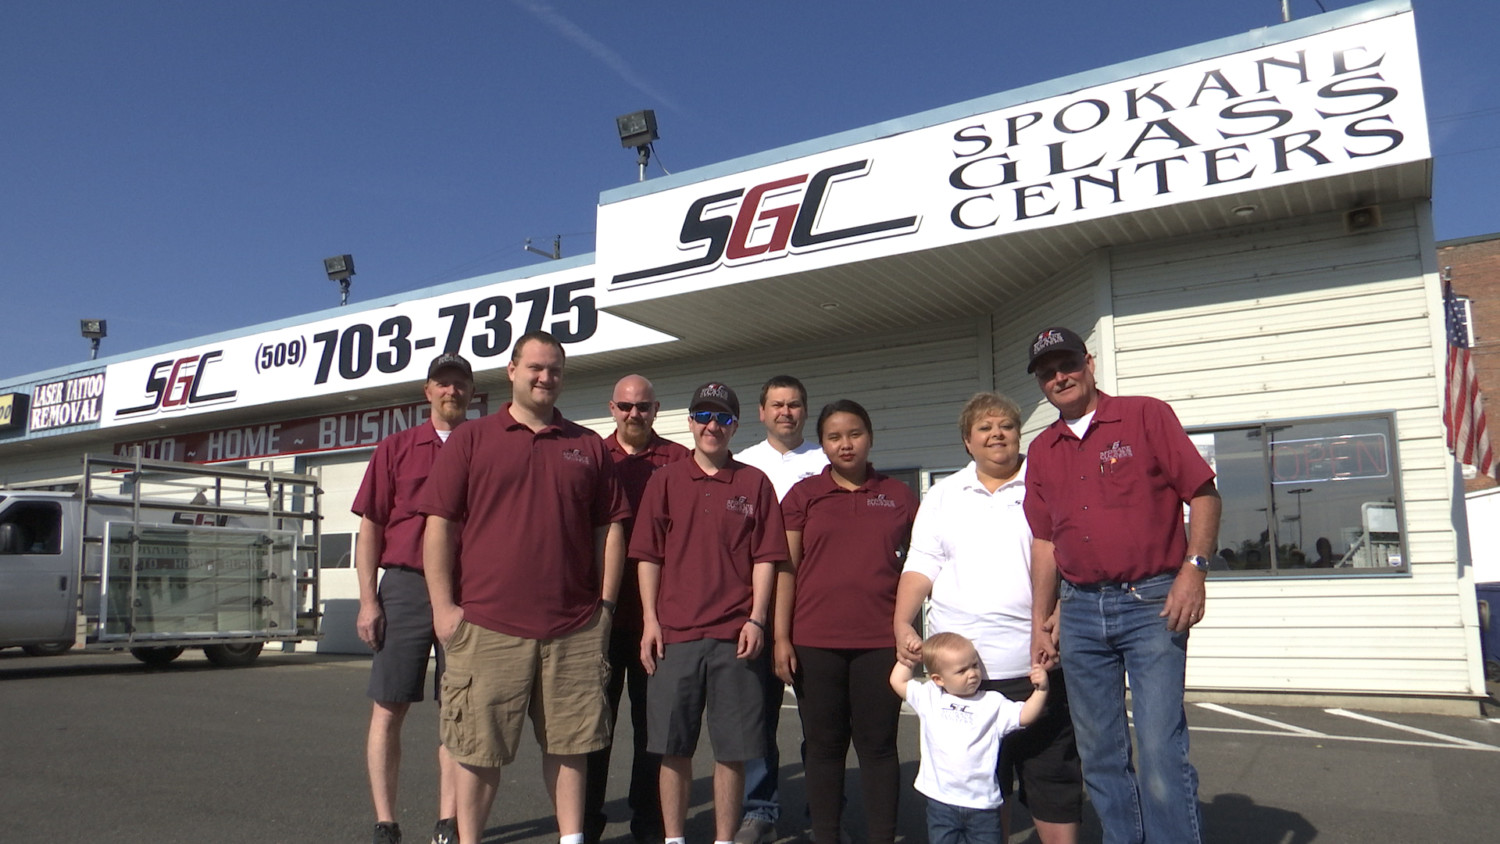 Spokane Glass Centers Staff